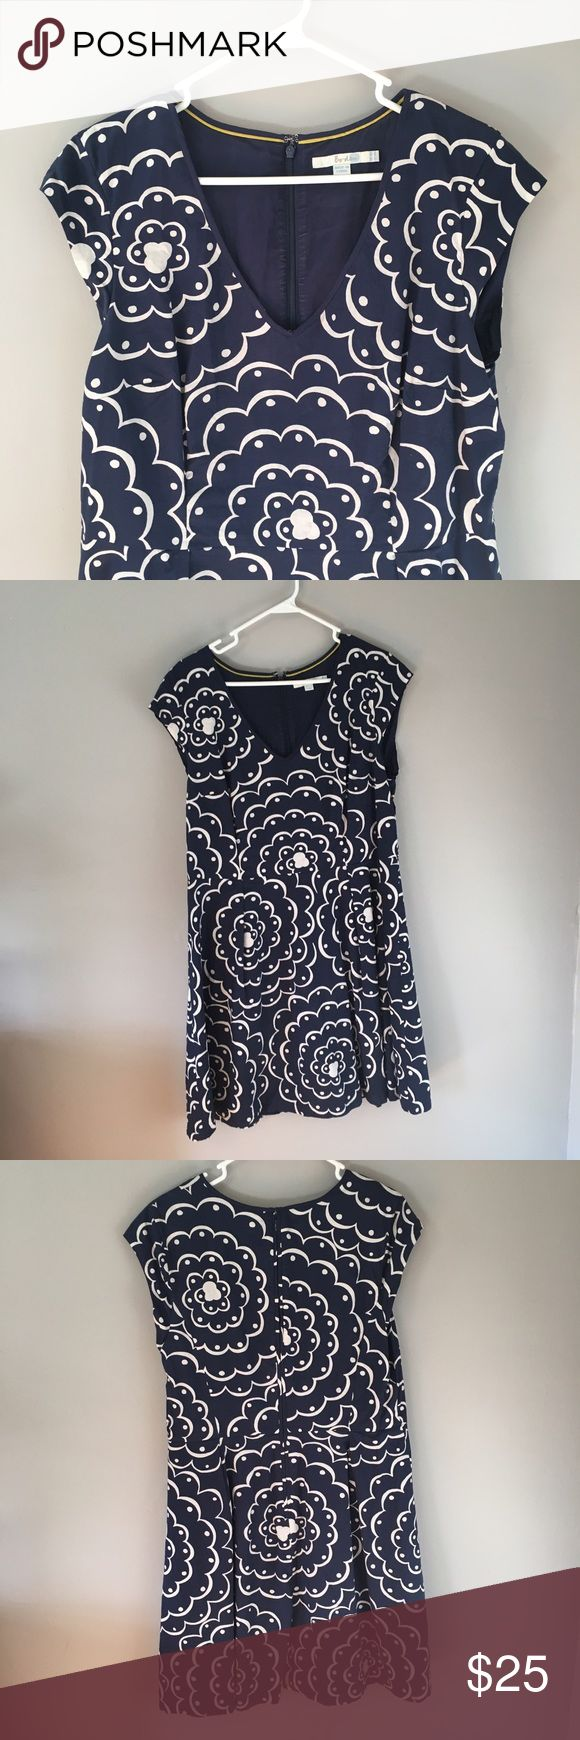 Boden navy blue cotton dress Lovely navy cotton dress from Boden, cap sleeves, size US 14 Boden Dresses